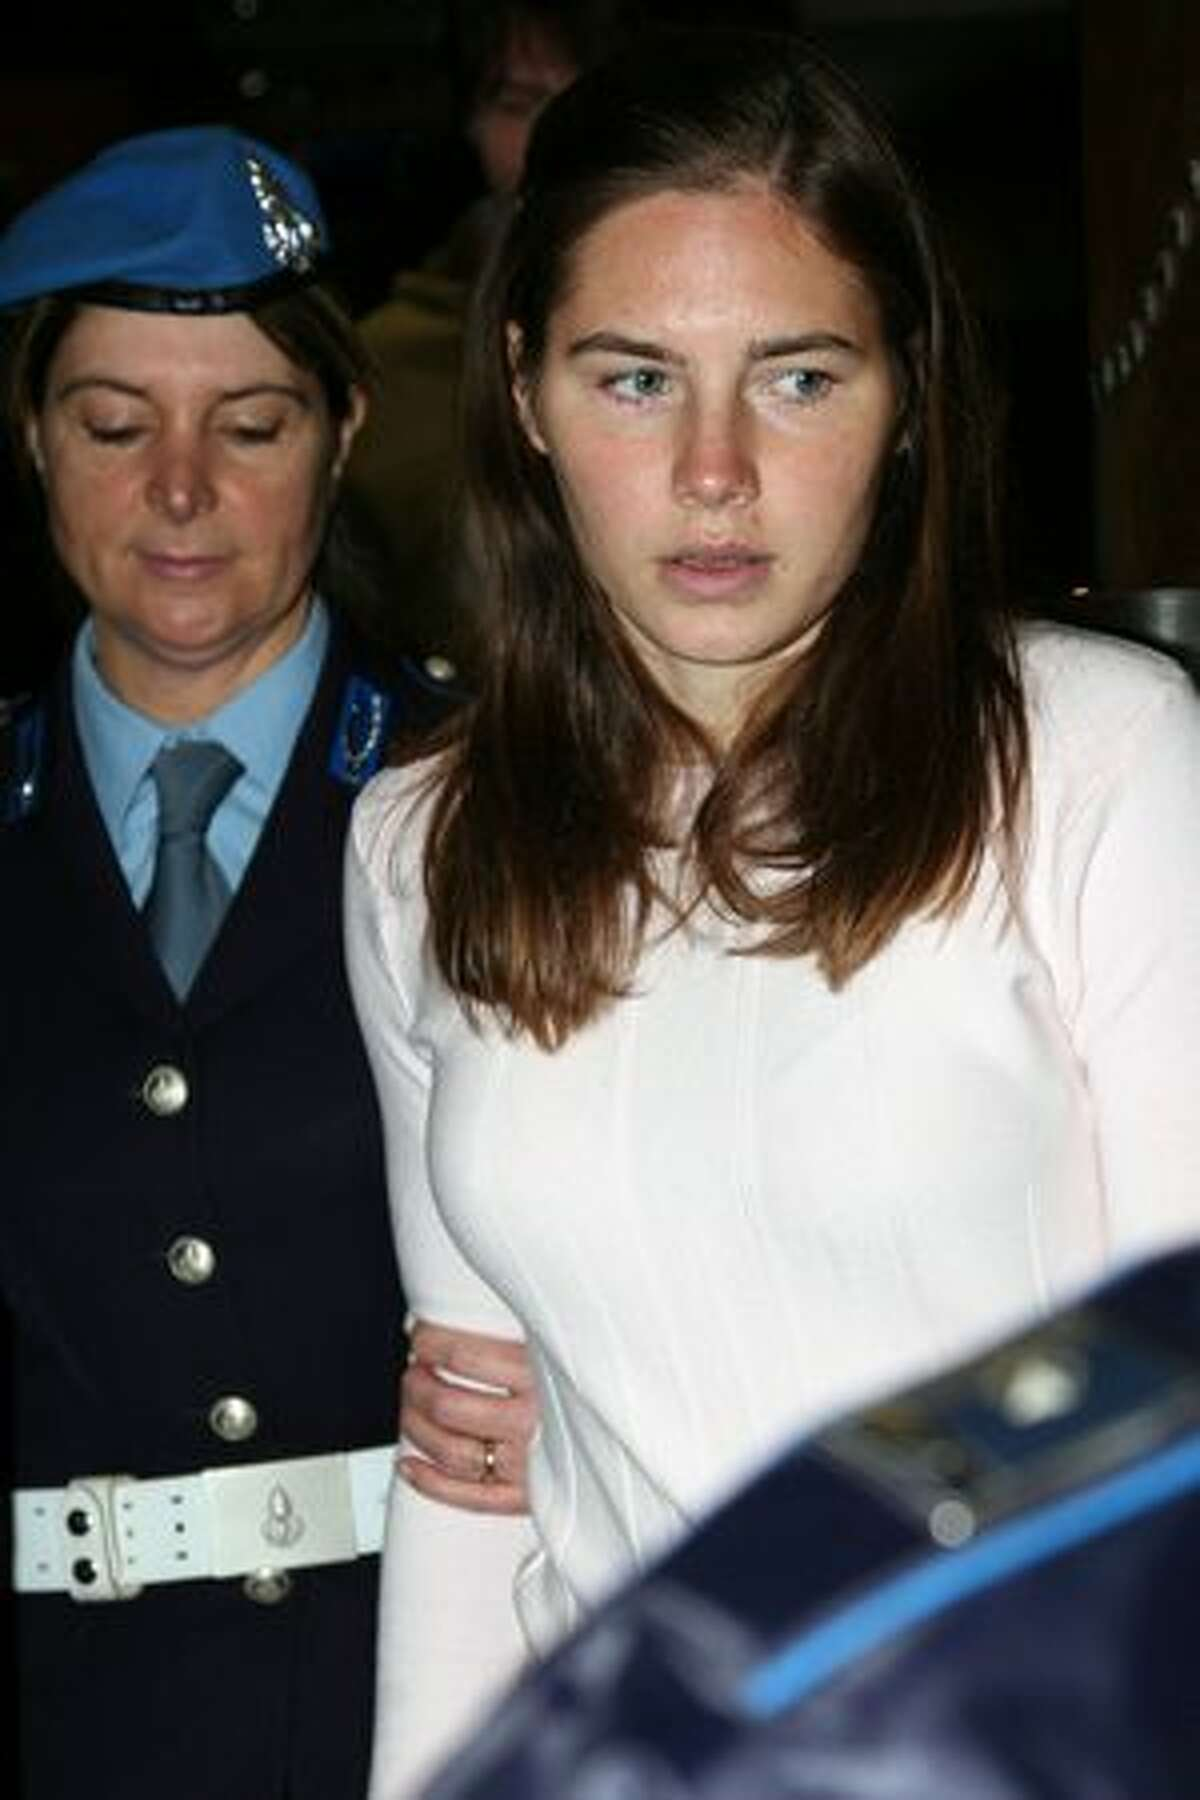 Amanda Knox arrives at the Perugia courthouse for the civil parties summing up of the Meredith Kercher murder trial Friday in Perugia, Italy. Amanda Knox and her former Italian boyfriend Raffaele Sollecito have been charged with the murder of British student Meredith Kercher on November 1, 2007 in Italy.